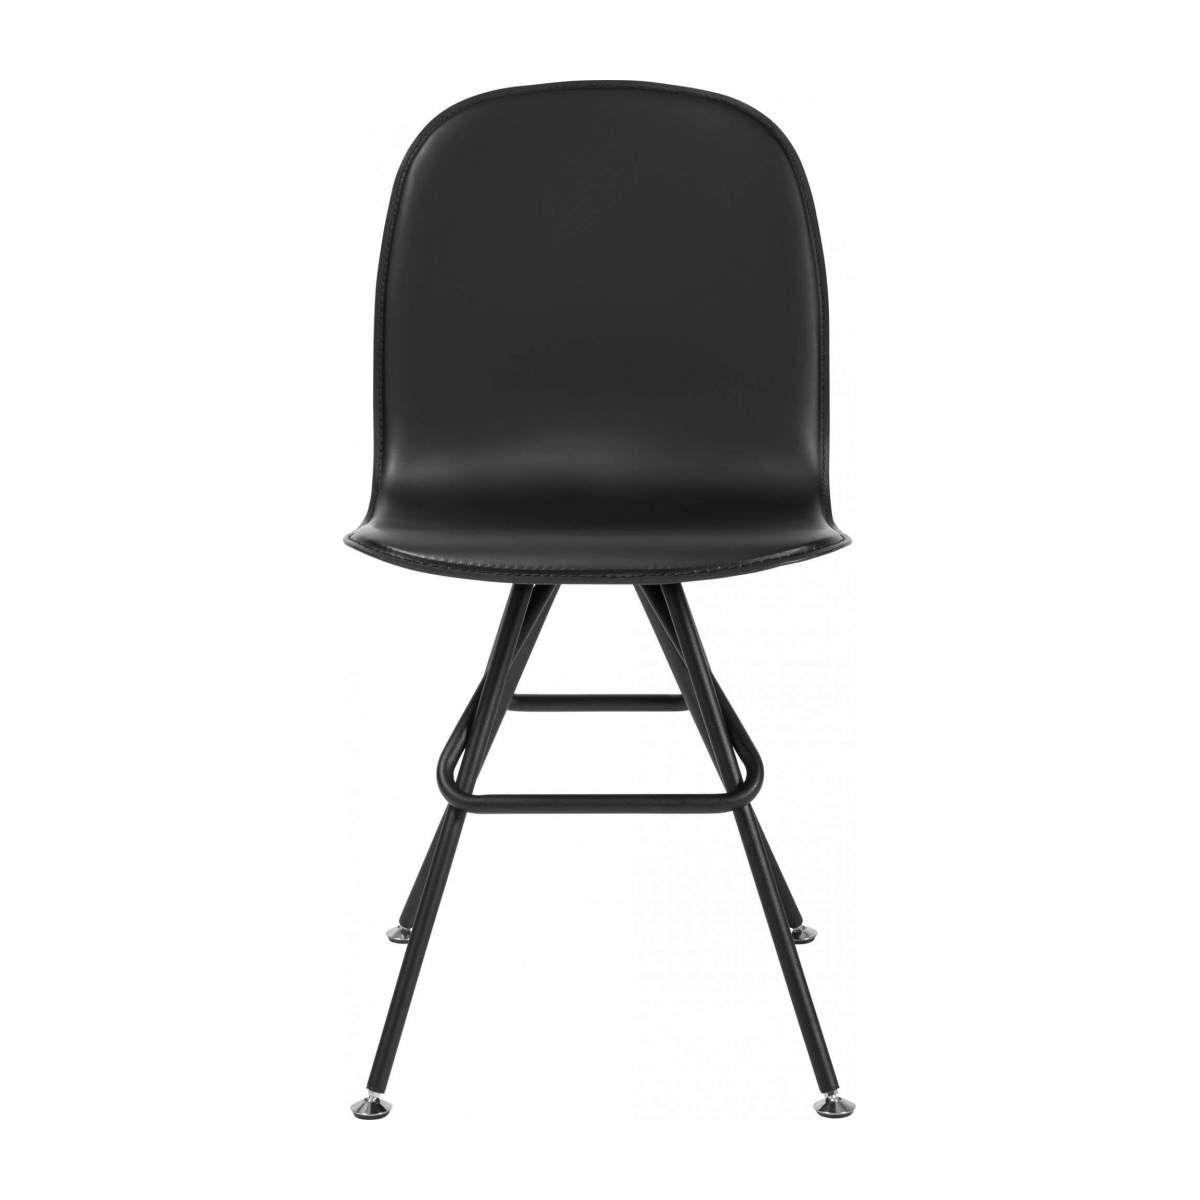 Chair with black faux leather cover and black steel legs n°1